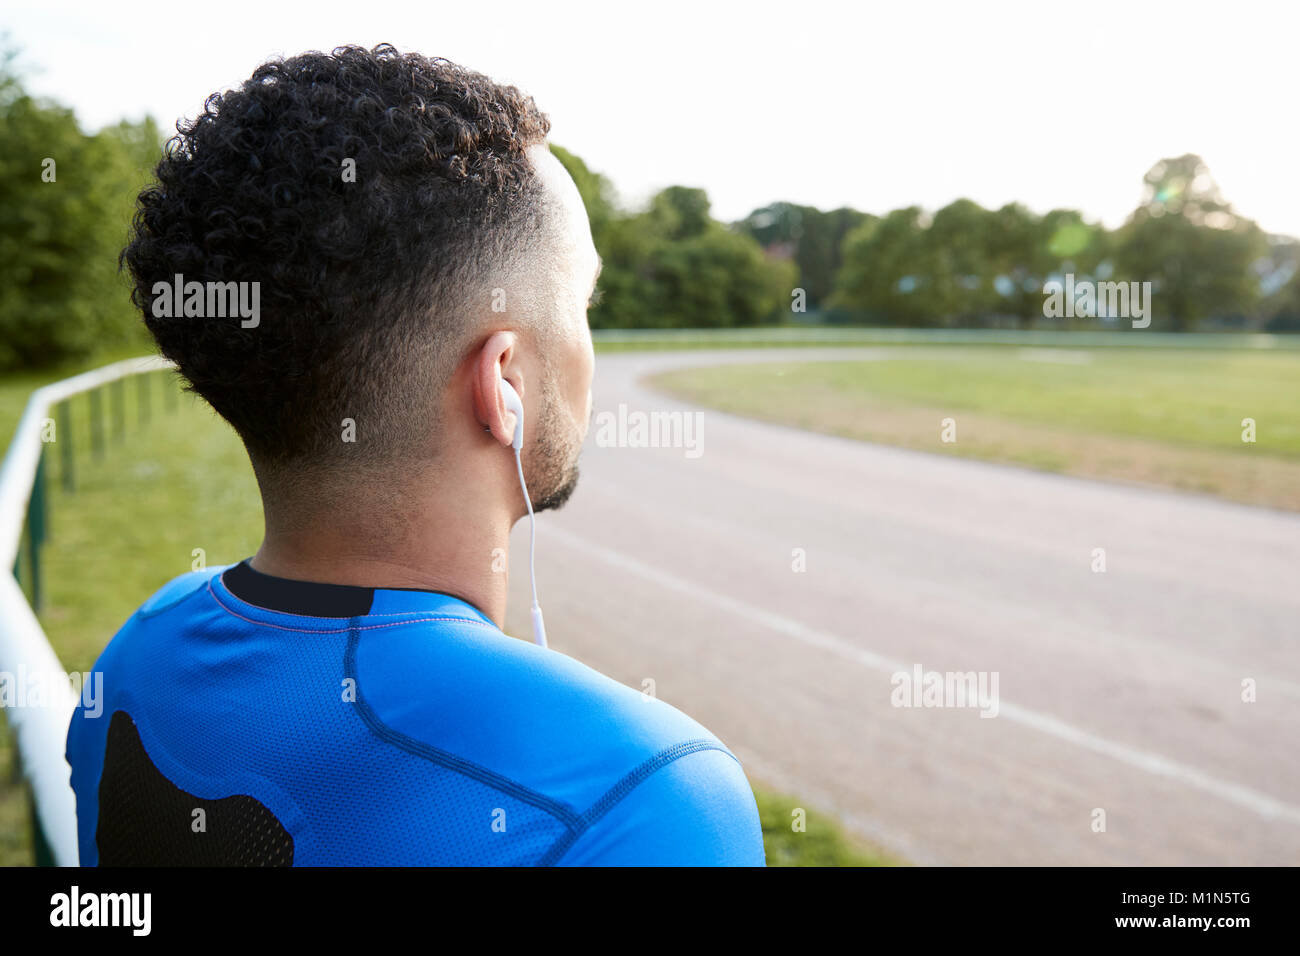 Male athlete at track looking away, close up, back view - Stock Image